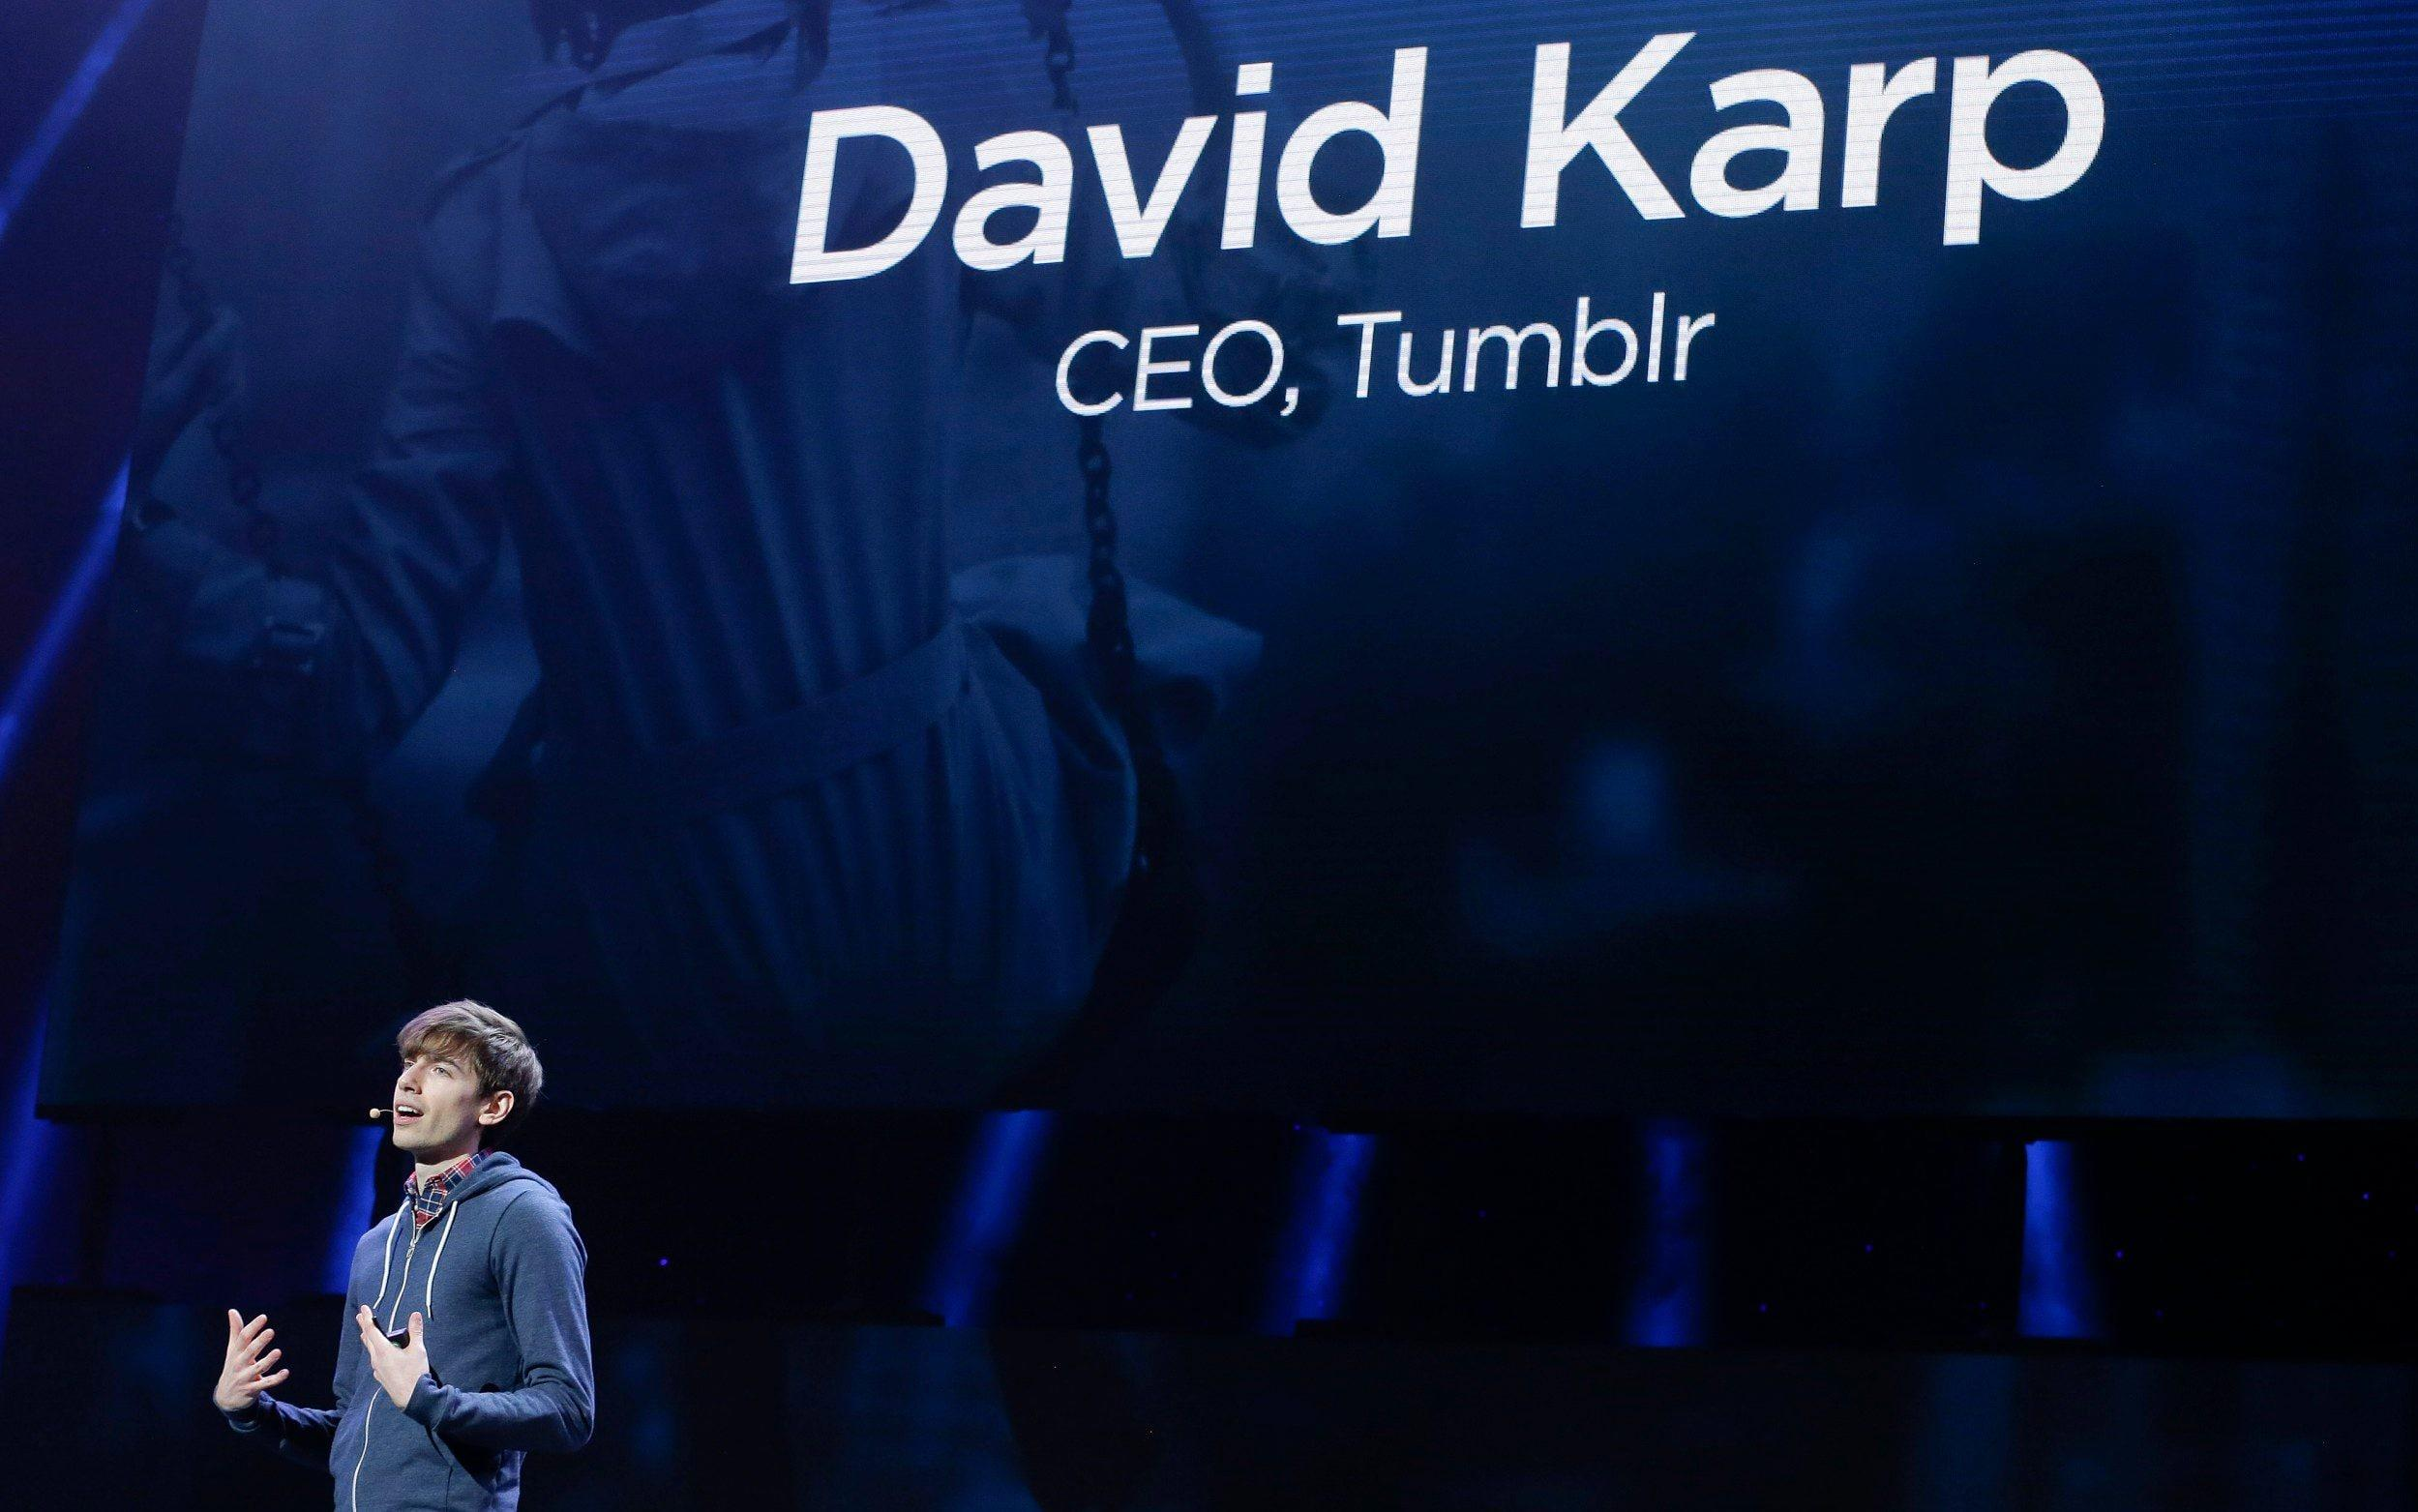 Blogging site Tumblr sold for 'less than $3m' – six years after Yahoo paid $1bn for it